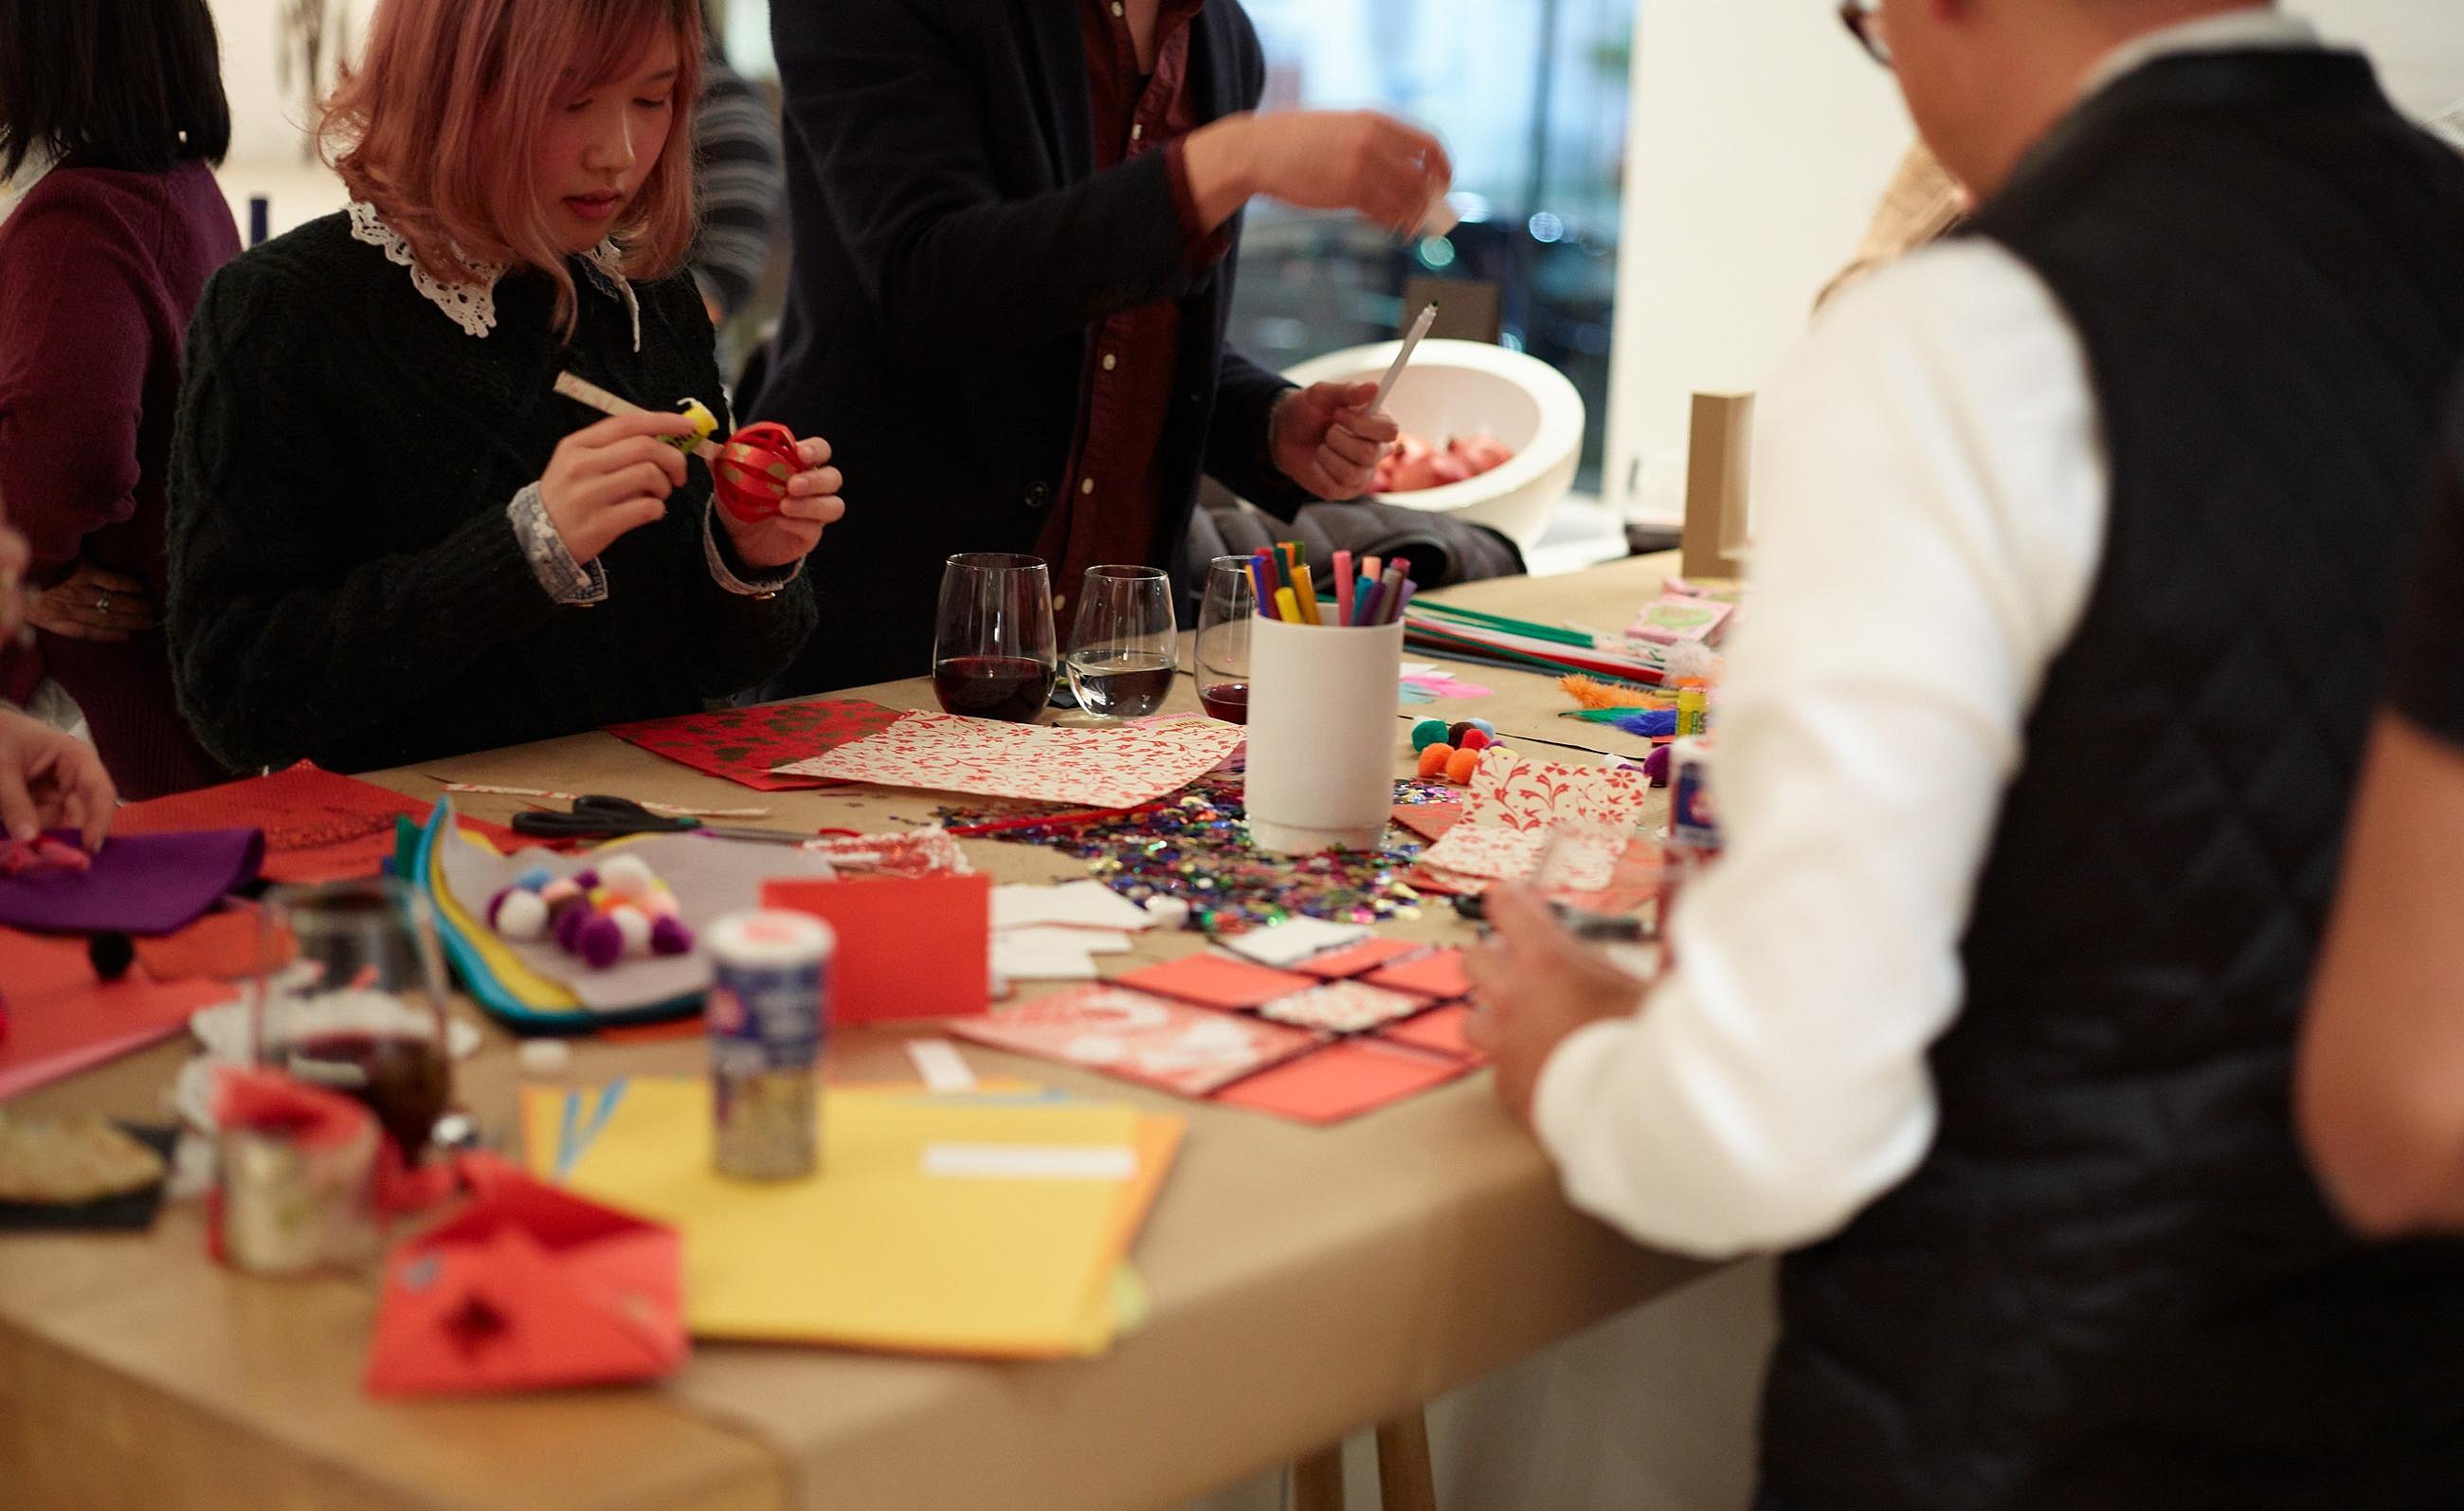 Detail of guests happily creating valentines at b3 work top.